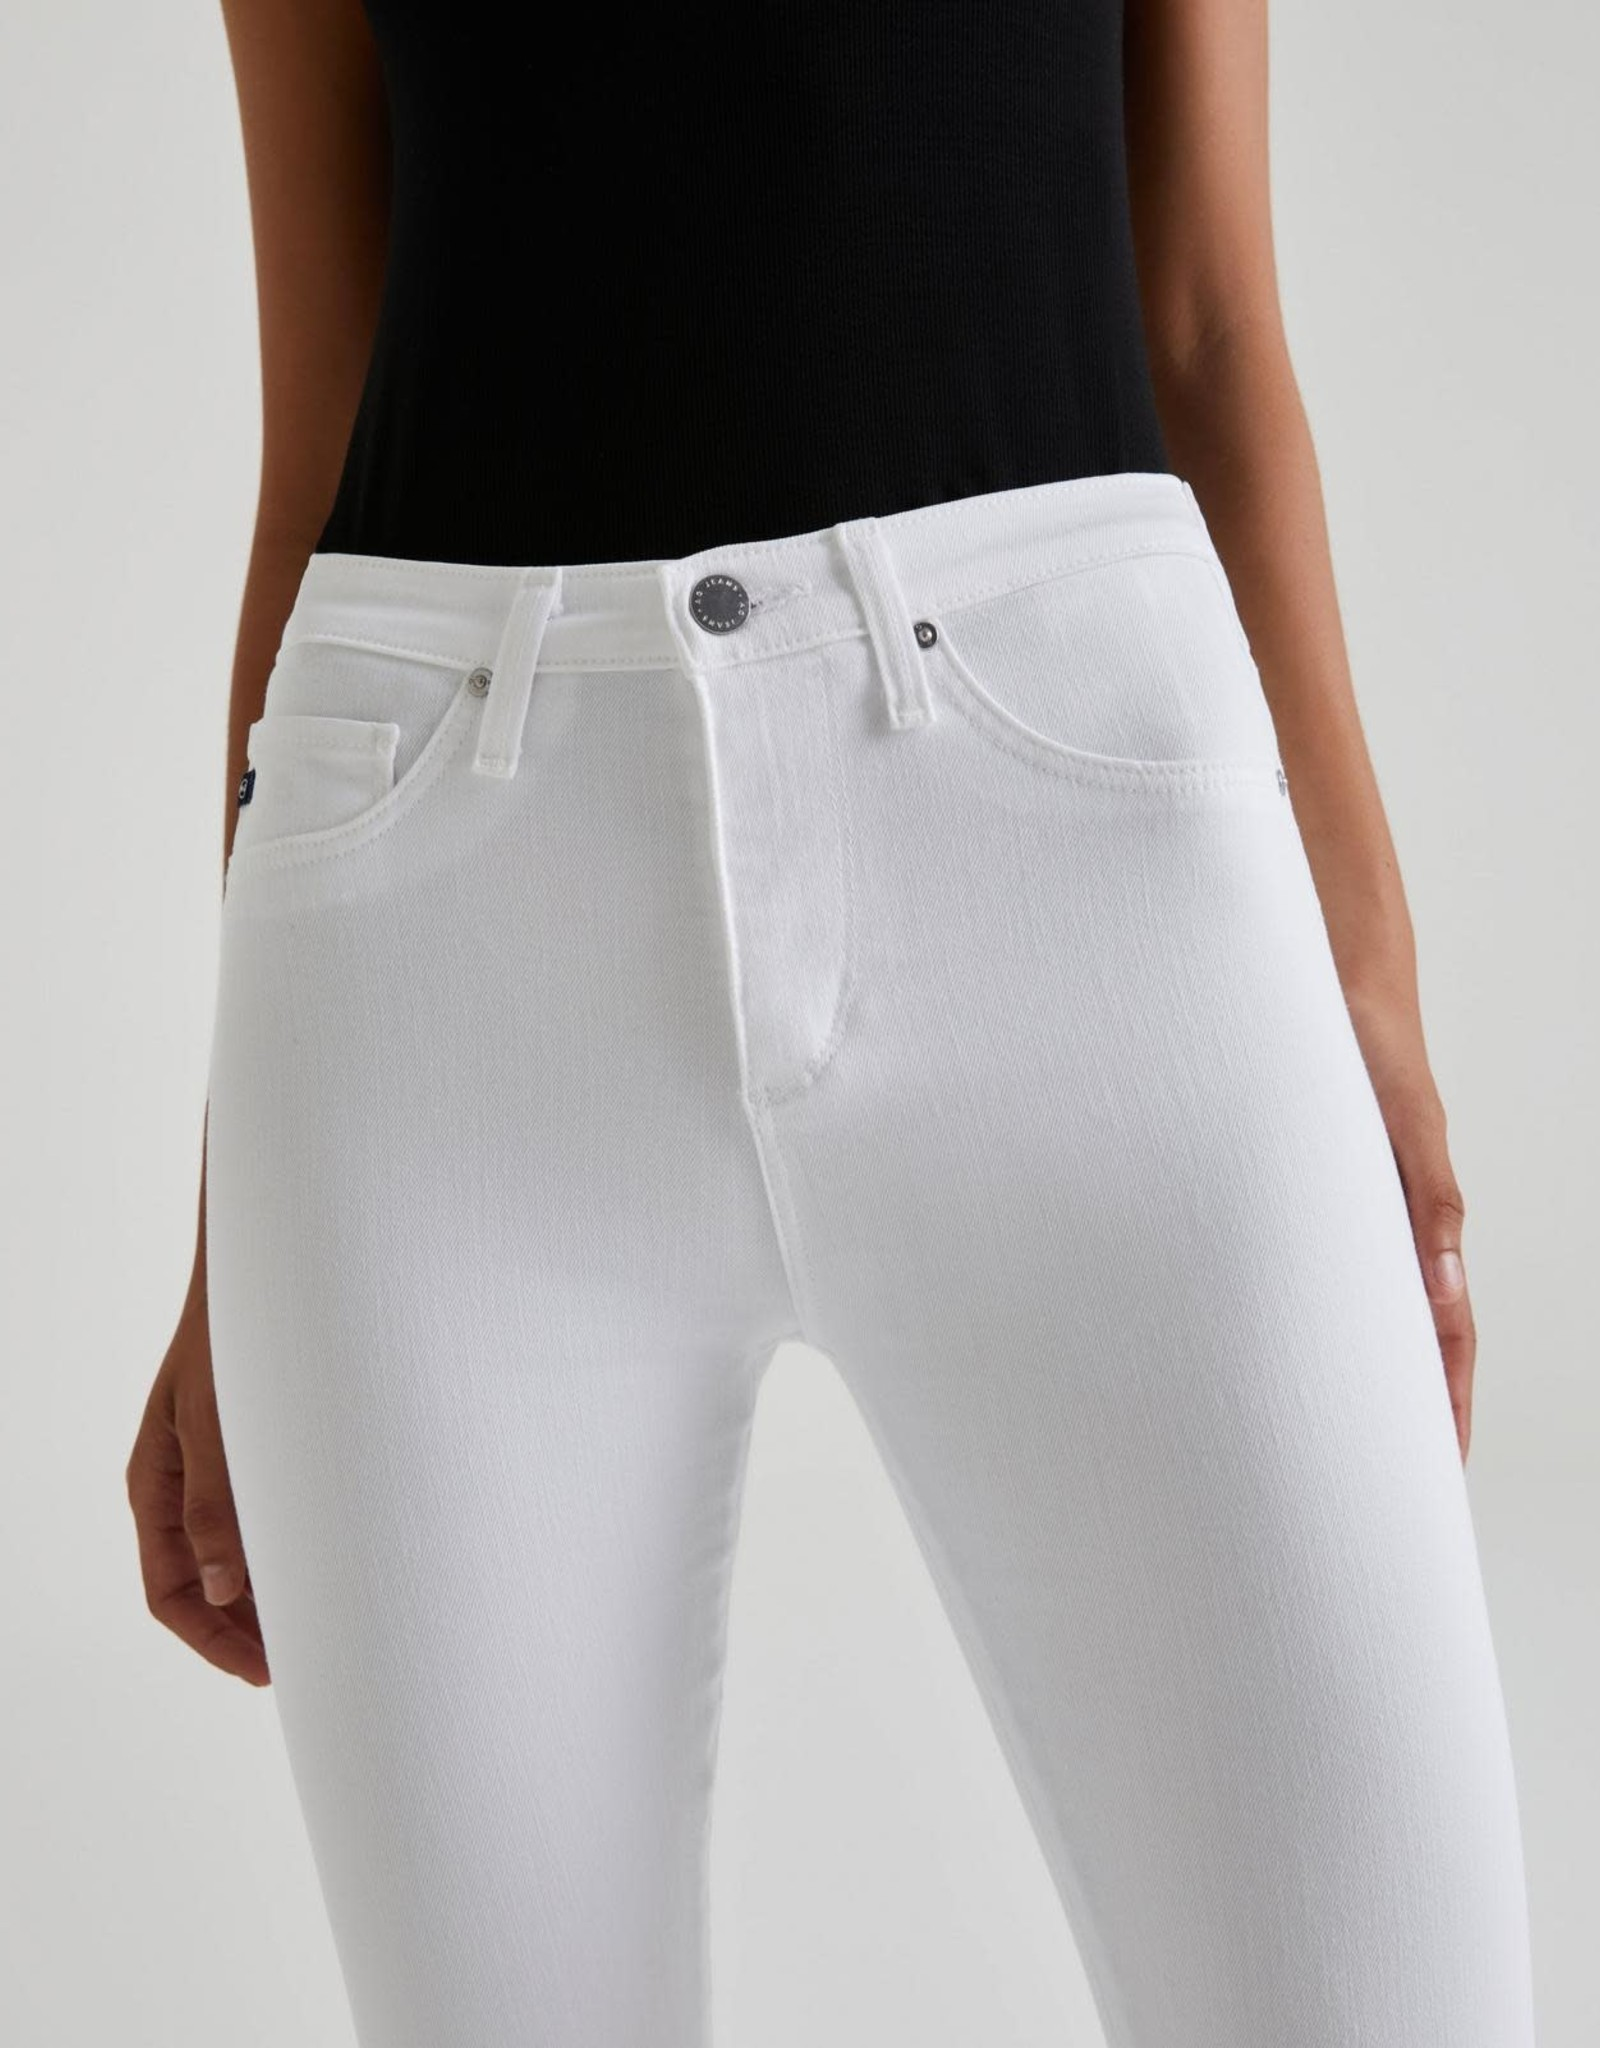 ADRIANO GOLDSCHMIED Farrah Ankle Seamless Pant